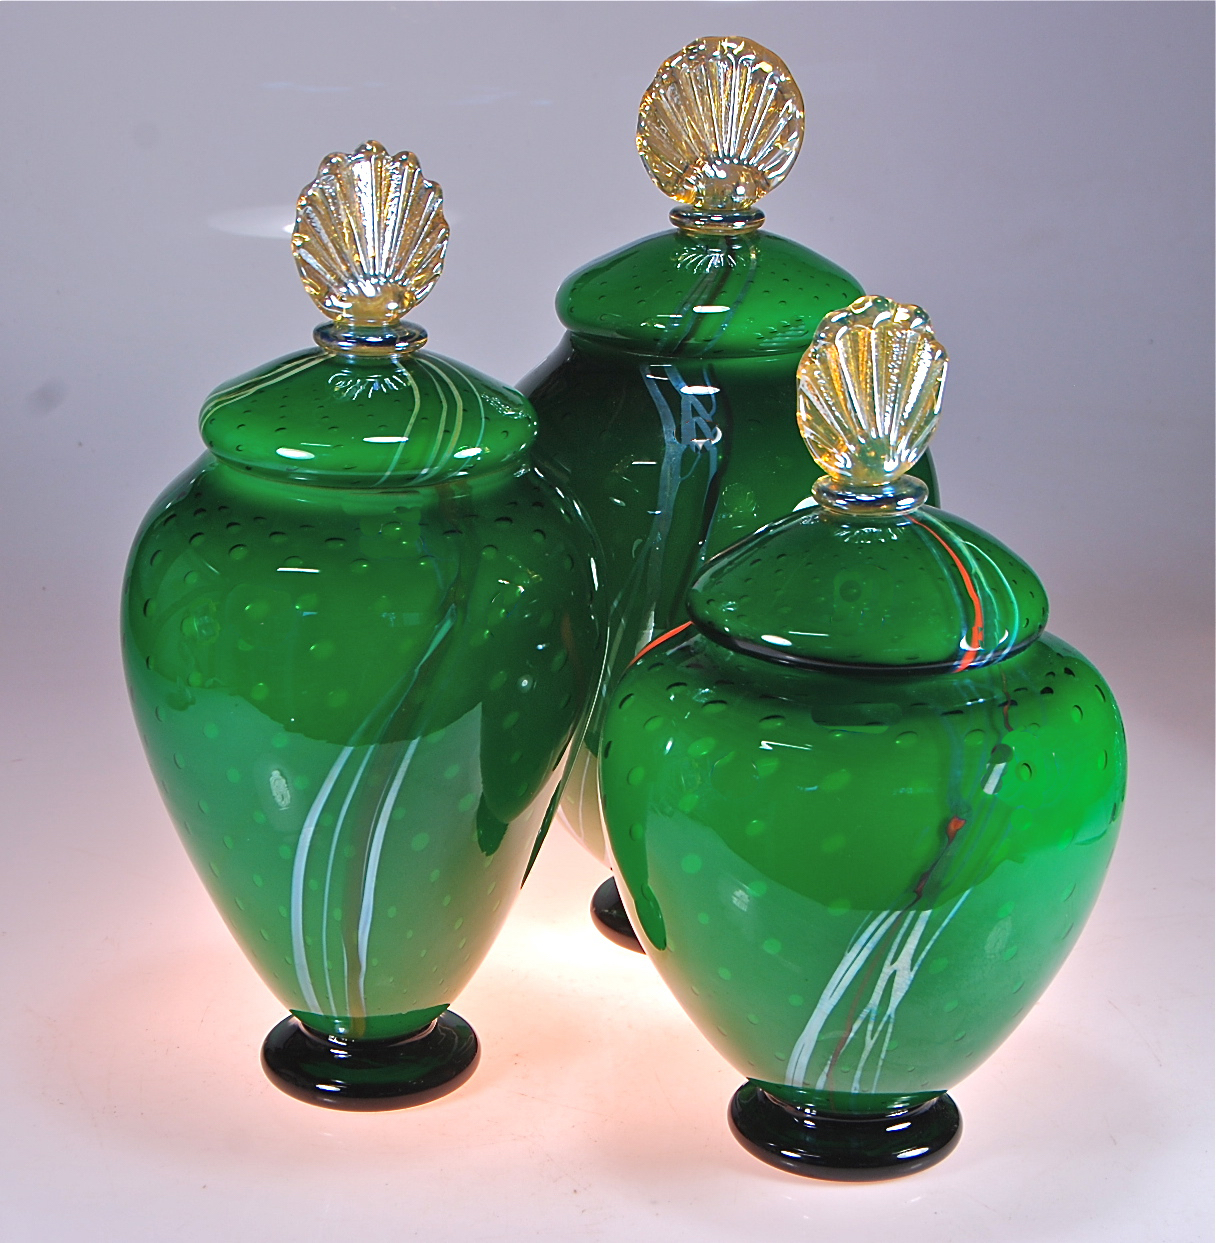 Maui wish keepers - strini art glass